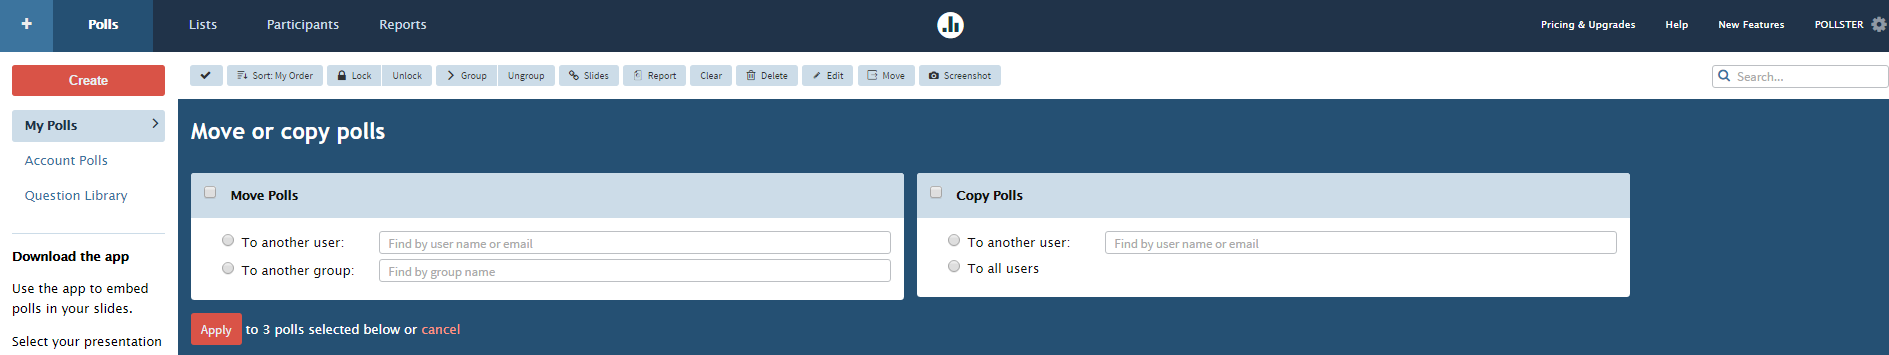 Moving multiple polls between groups or users: step 2